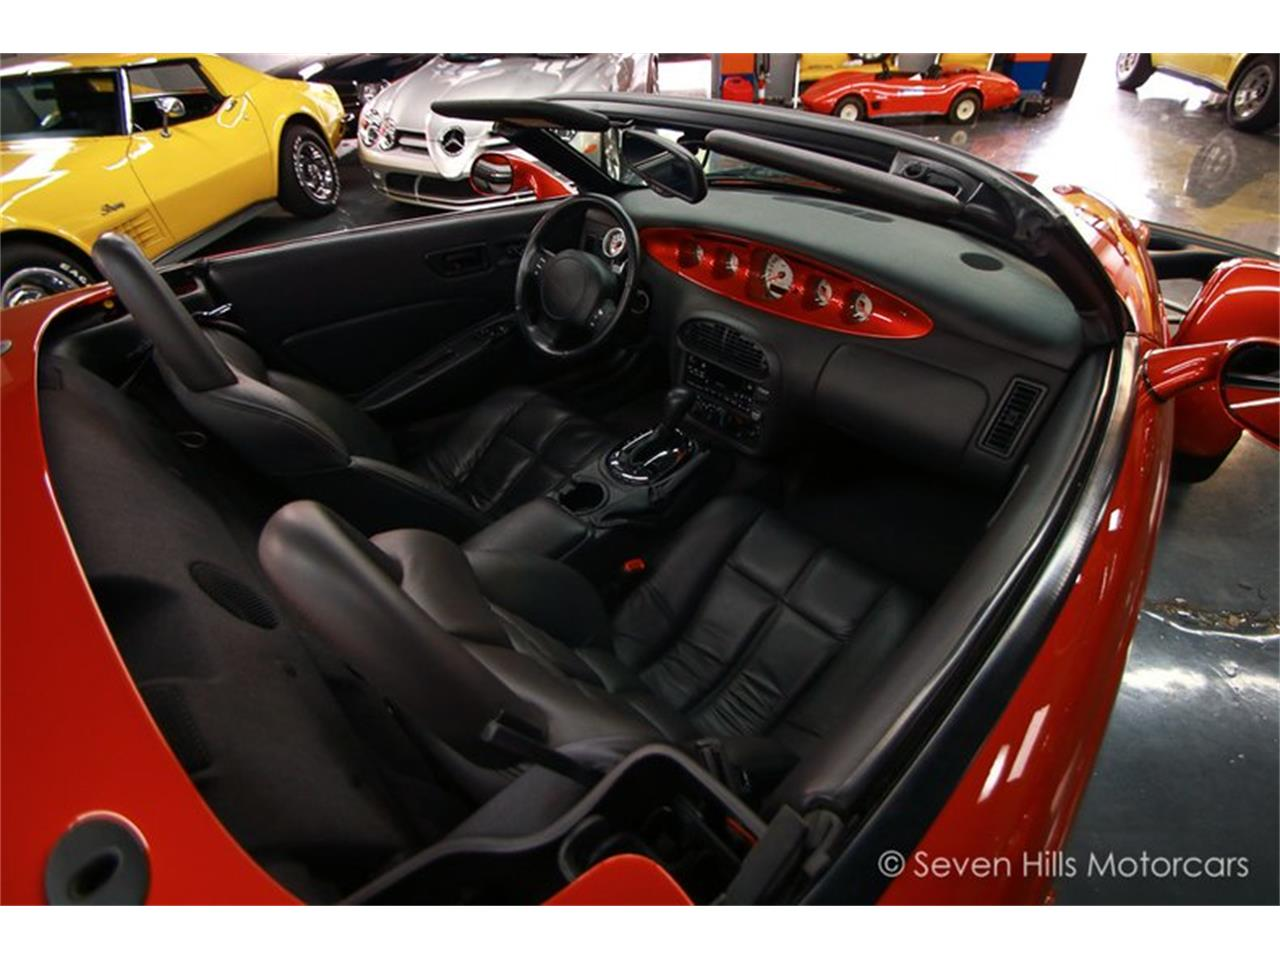 Large Picture of 2001 Prowler - $37,900.00 Offered by Seven Hills Motorcars - PW1N